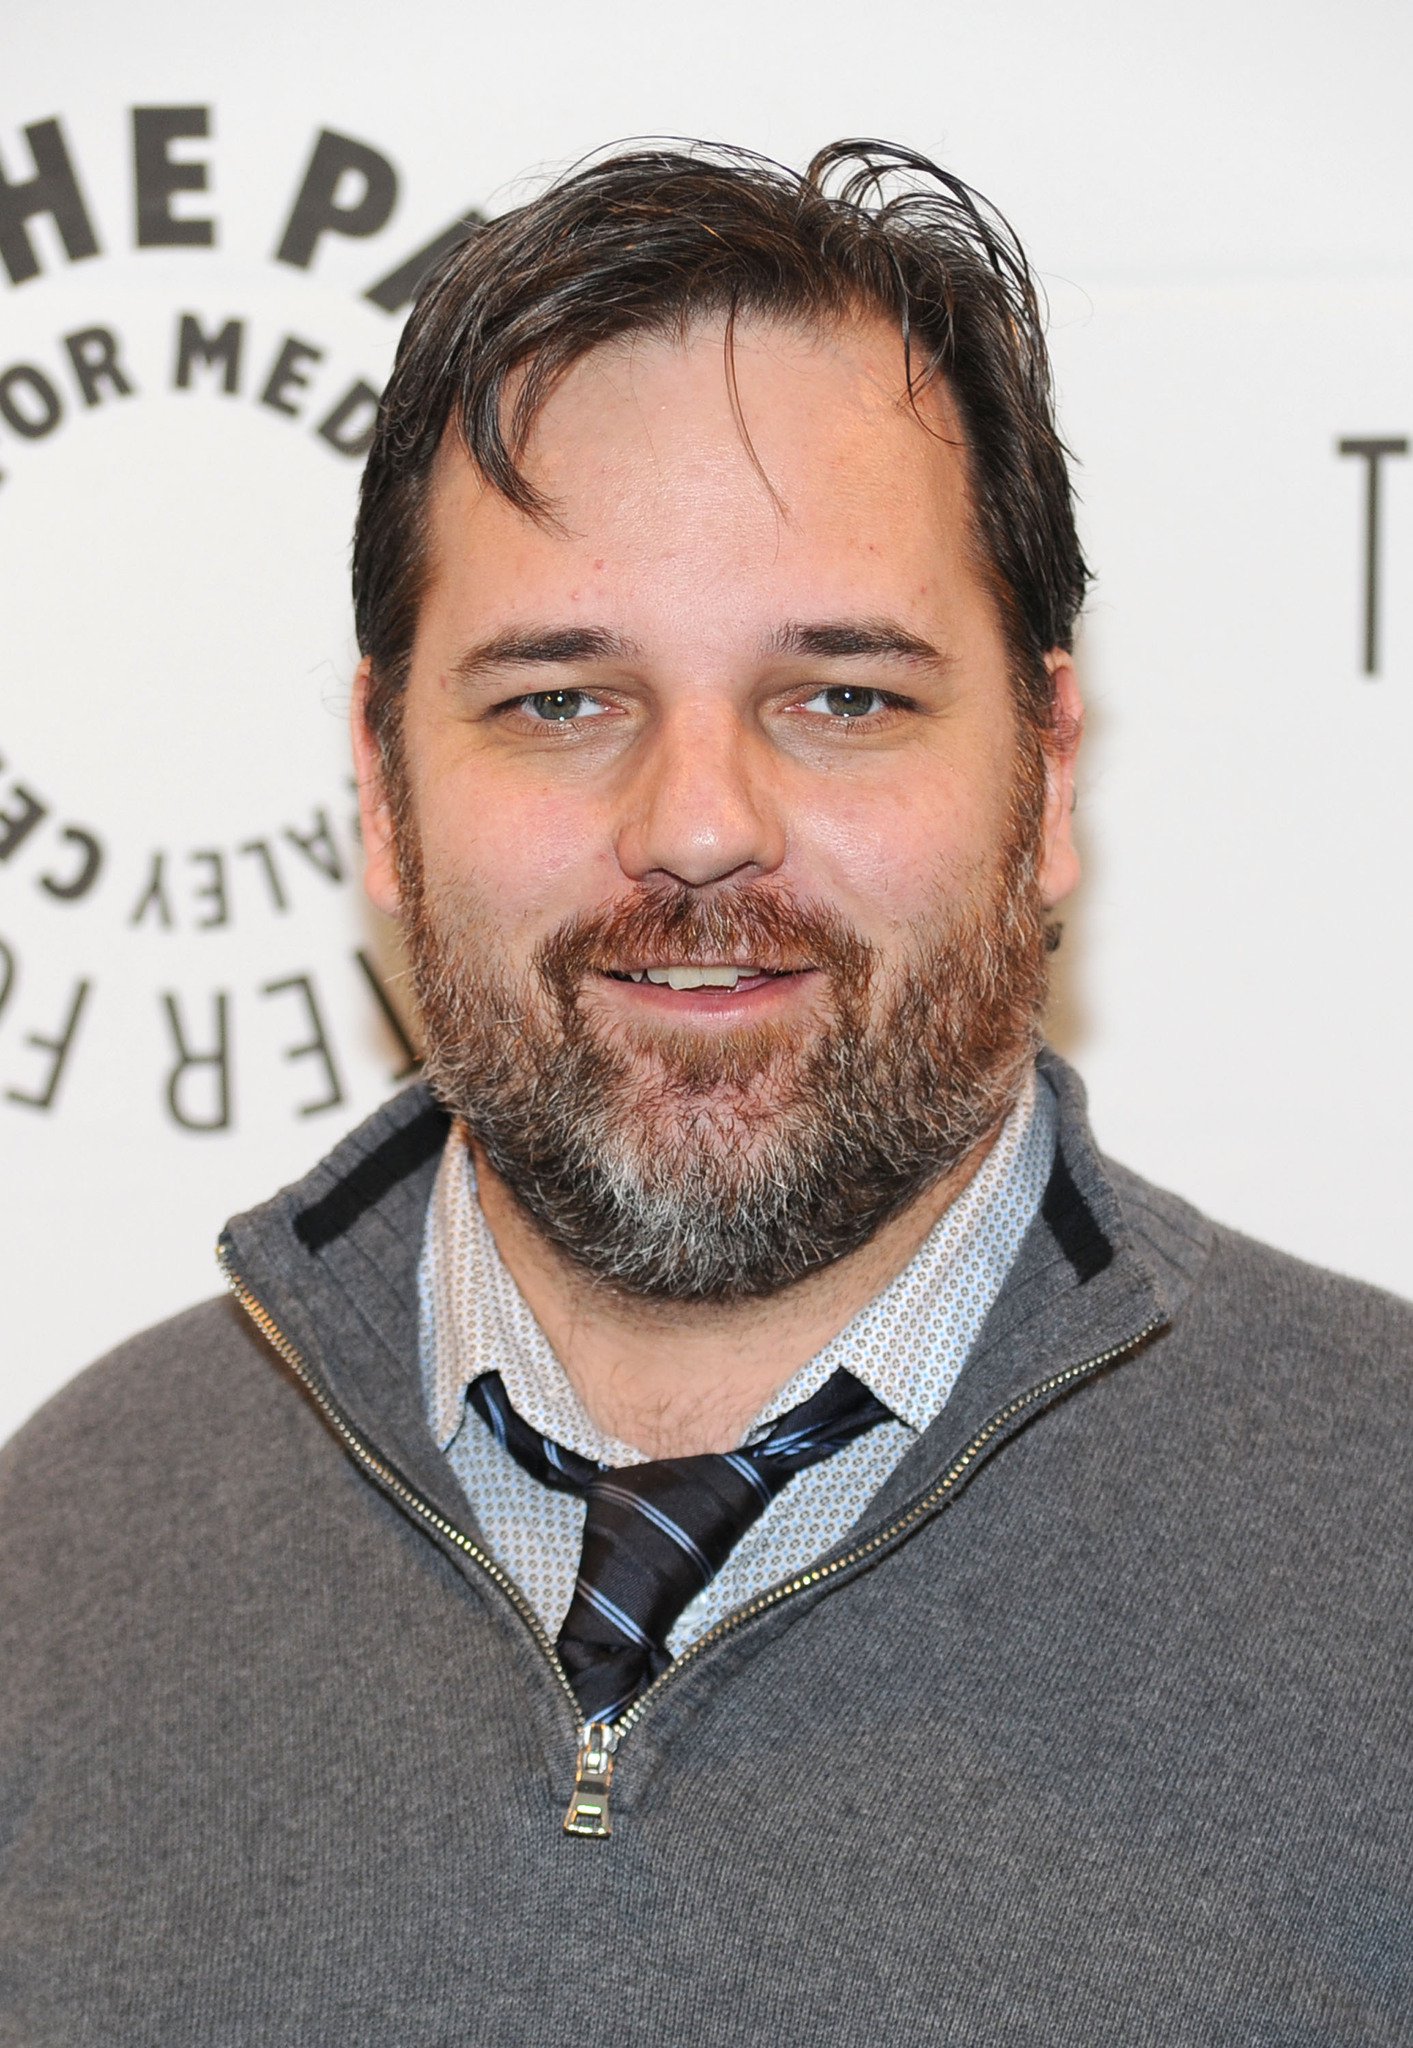 The 47-year old son of father (?) and mother(?) Dan Harmon in 2020 photo. Dan Harmon earned a million dollar salary - leaving the net worth at million in 2020